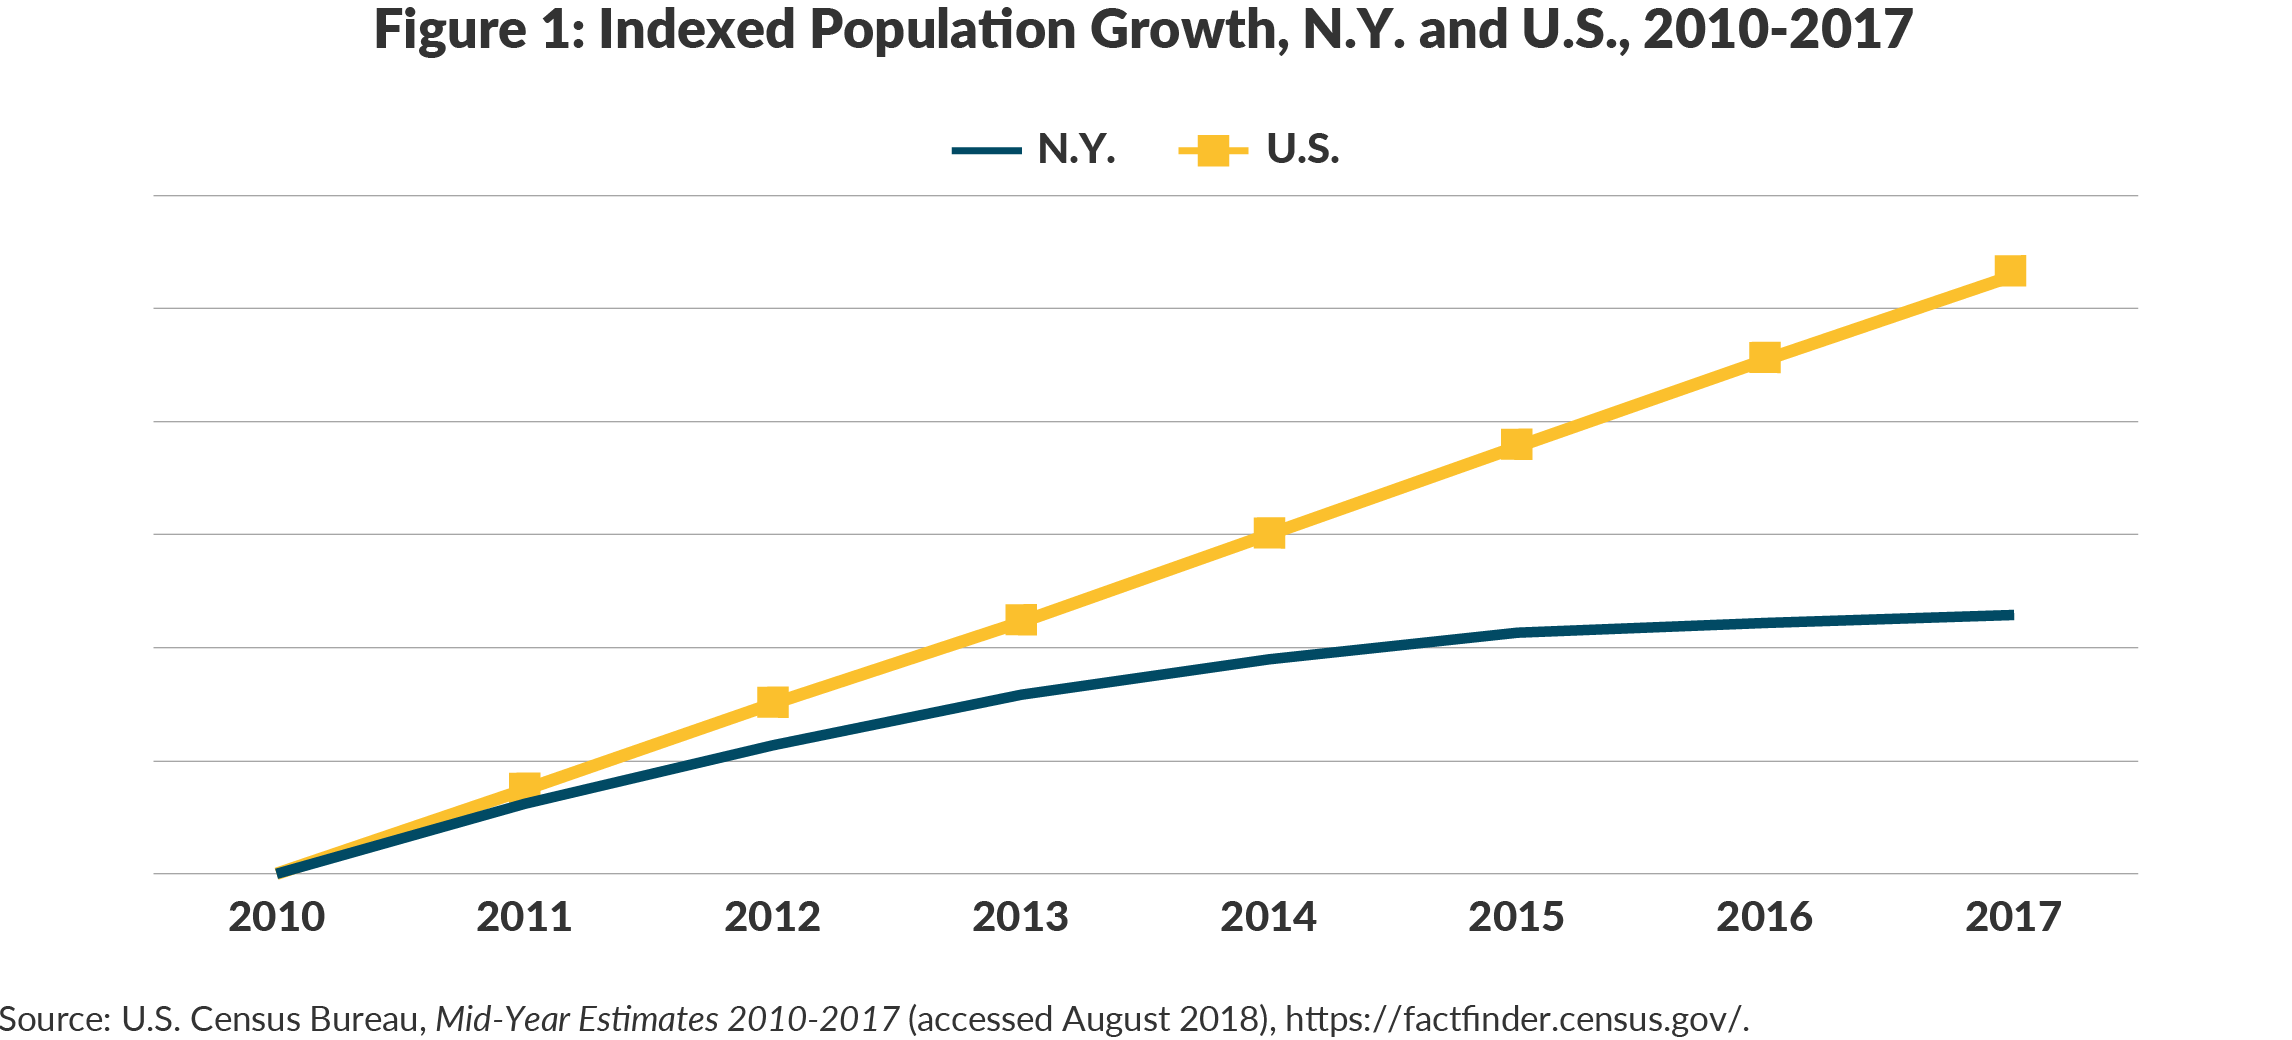 Figure 1: Indexed Population Growth, N.Y. and U.S., 2010-2017